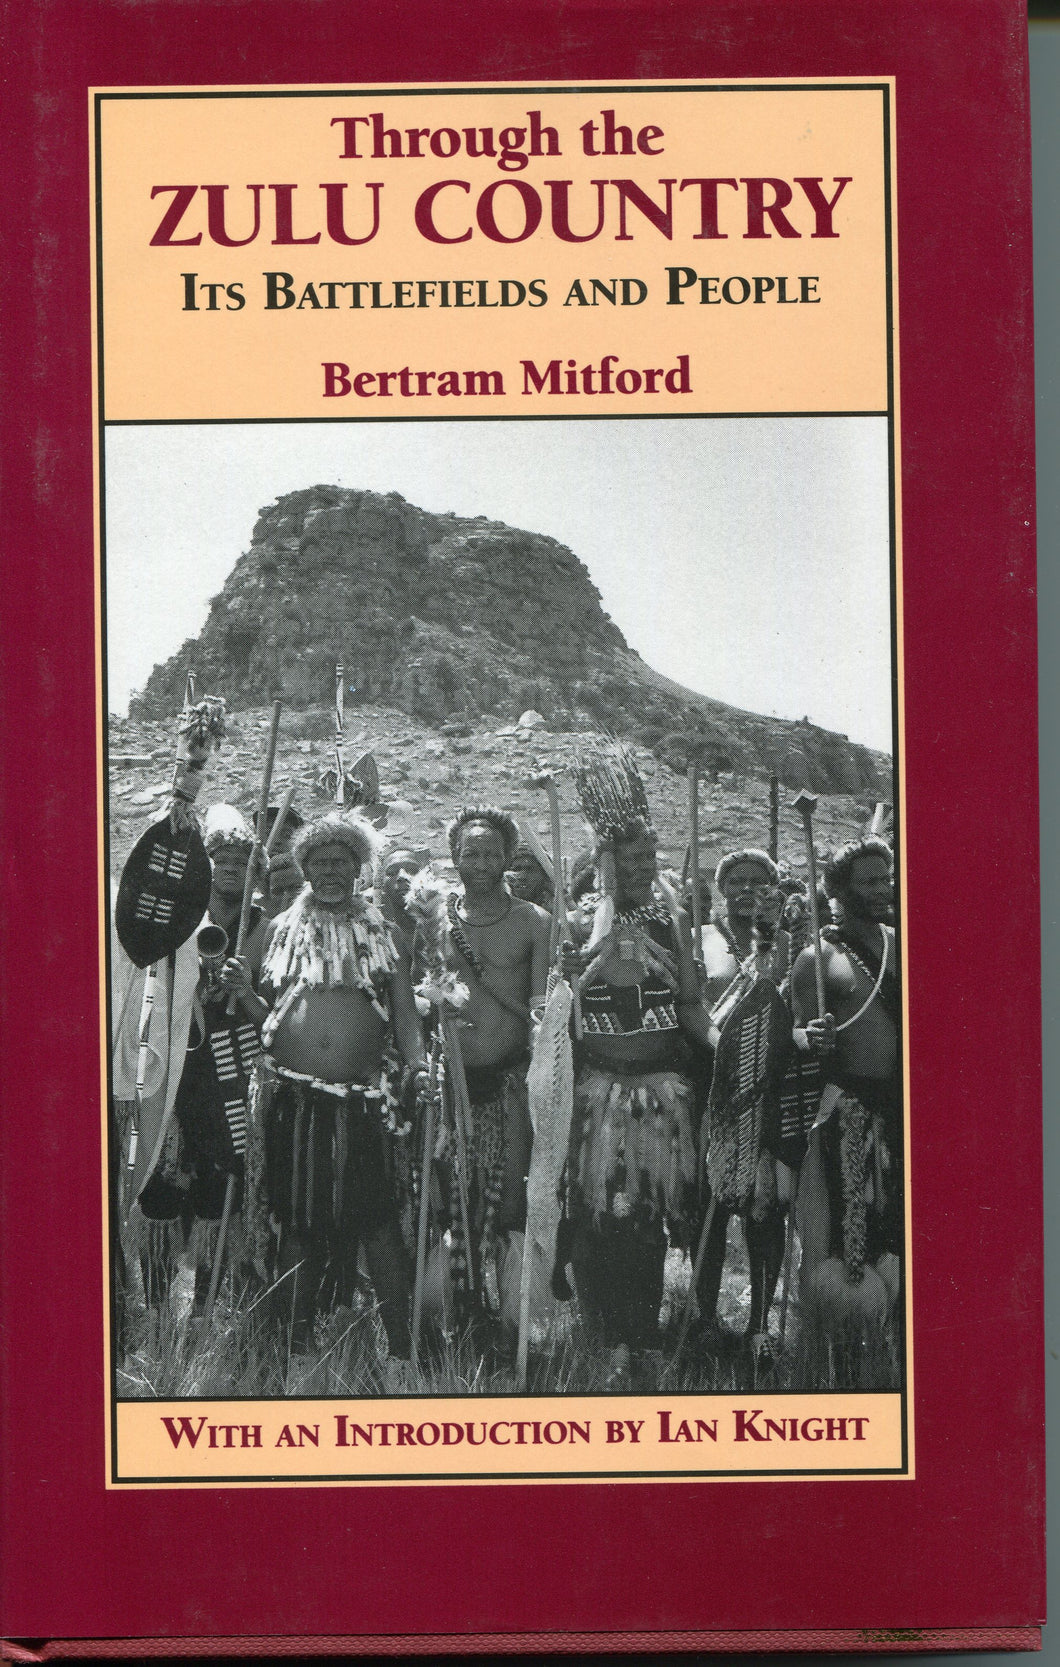 'Through The Zulu Country; Its Battlefields and Its People' By Bertram Mitford, Introduction by Ian Knight